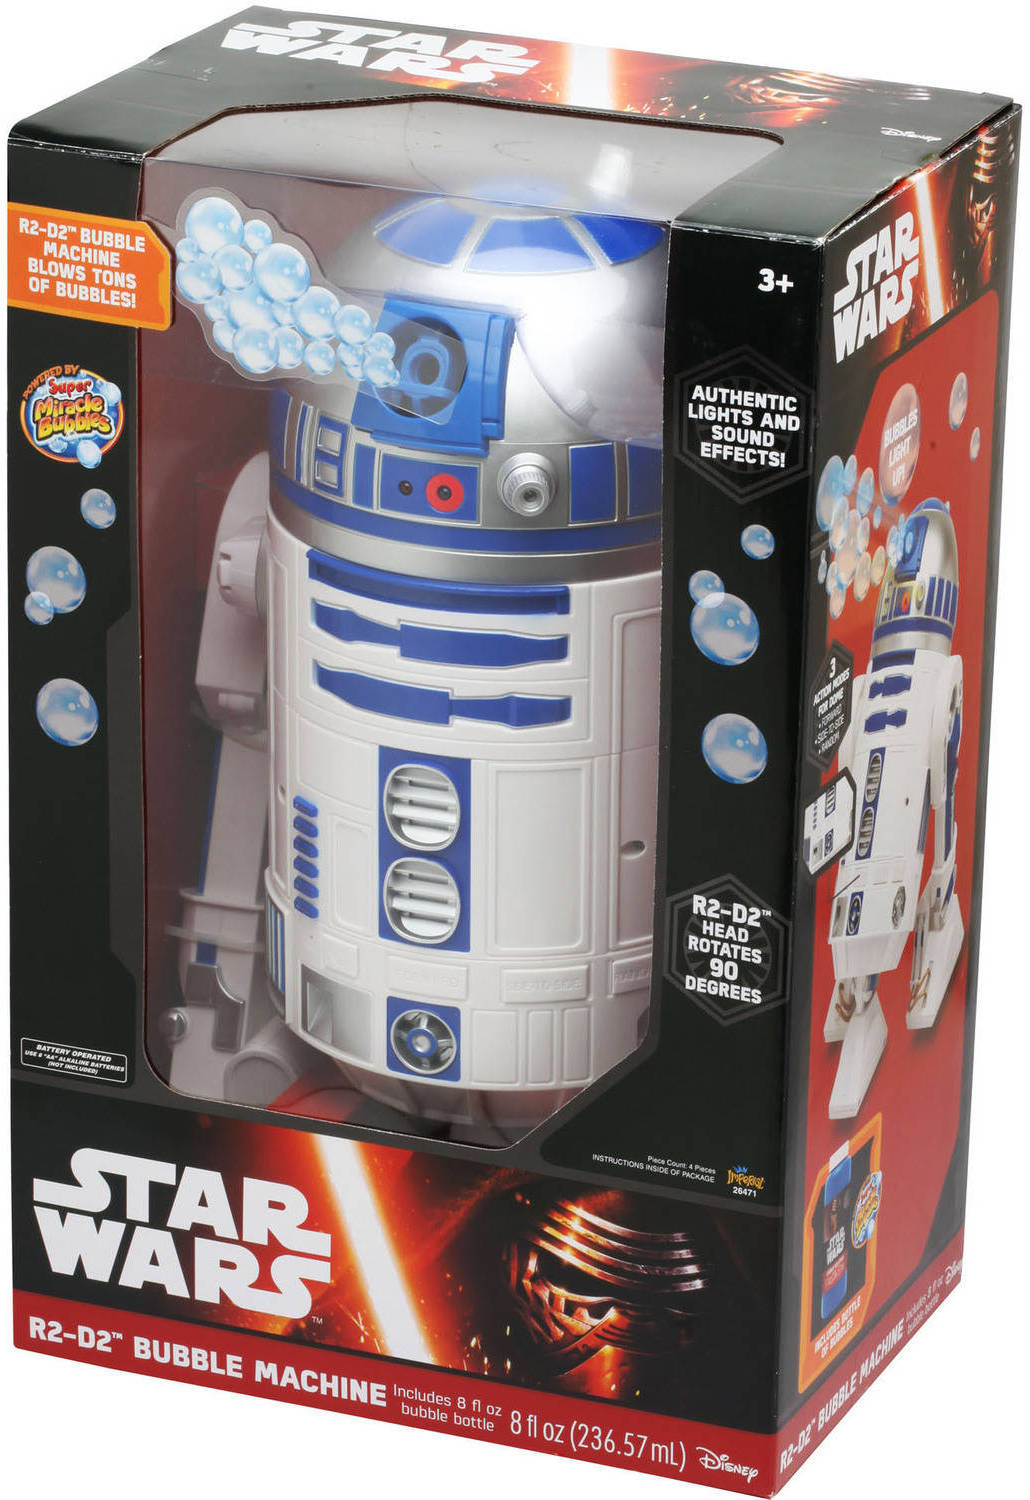 Star Wars R2-D2 Bubble Maker